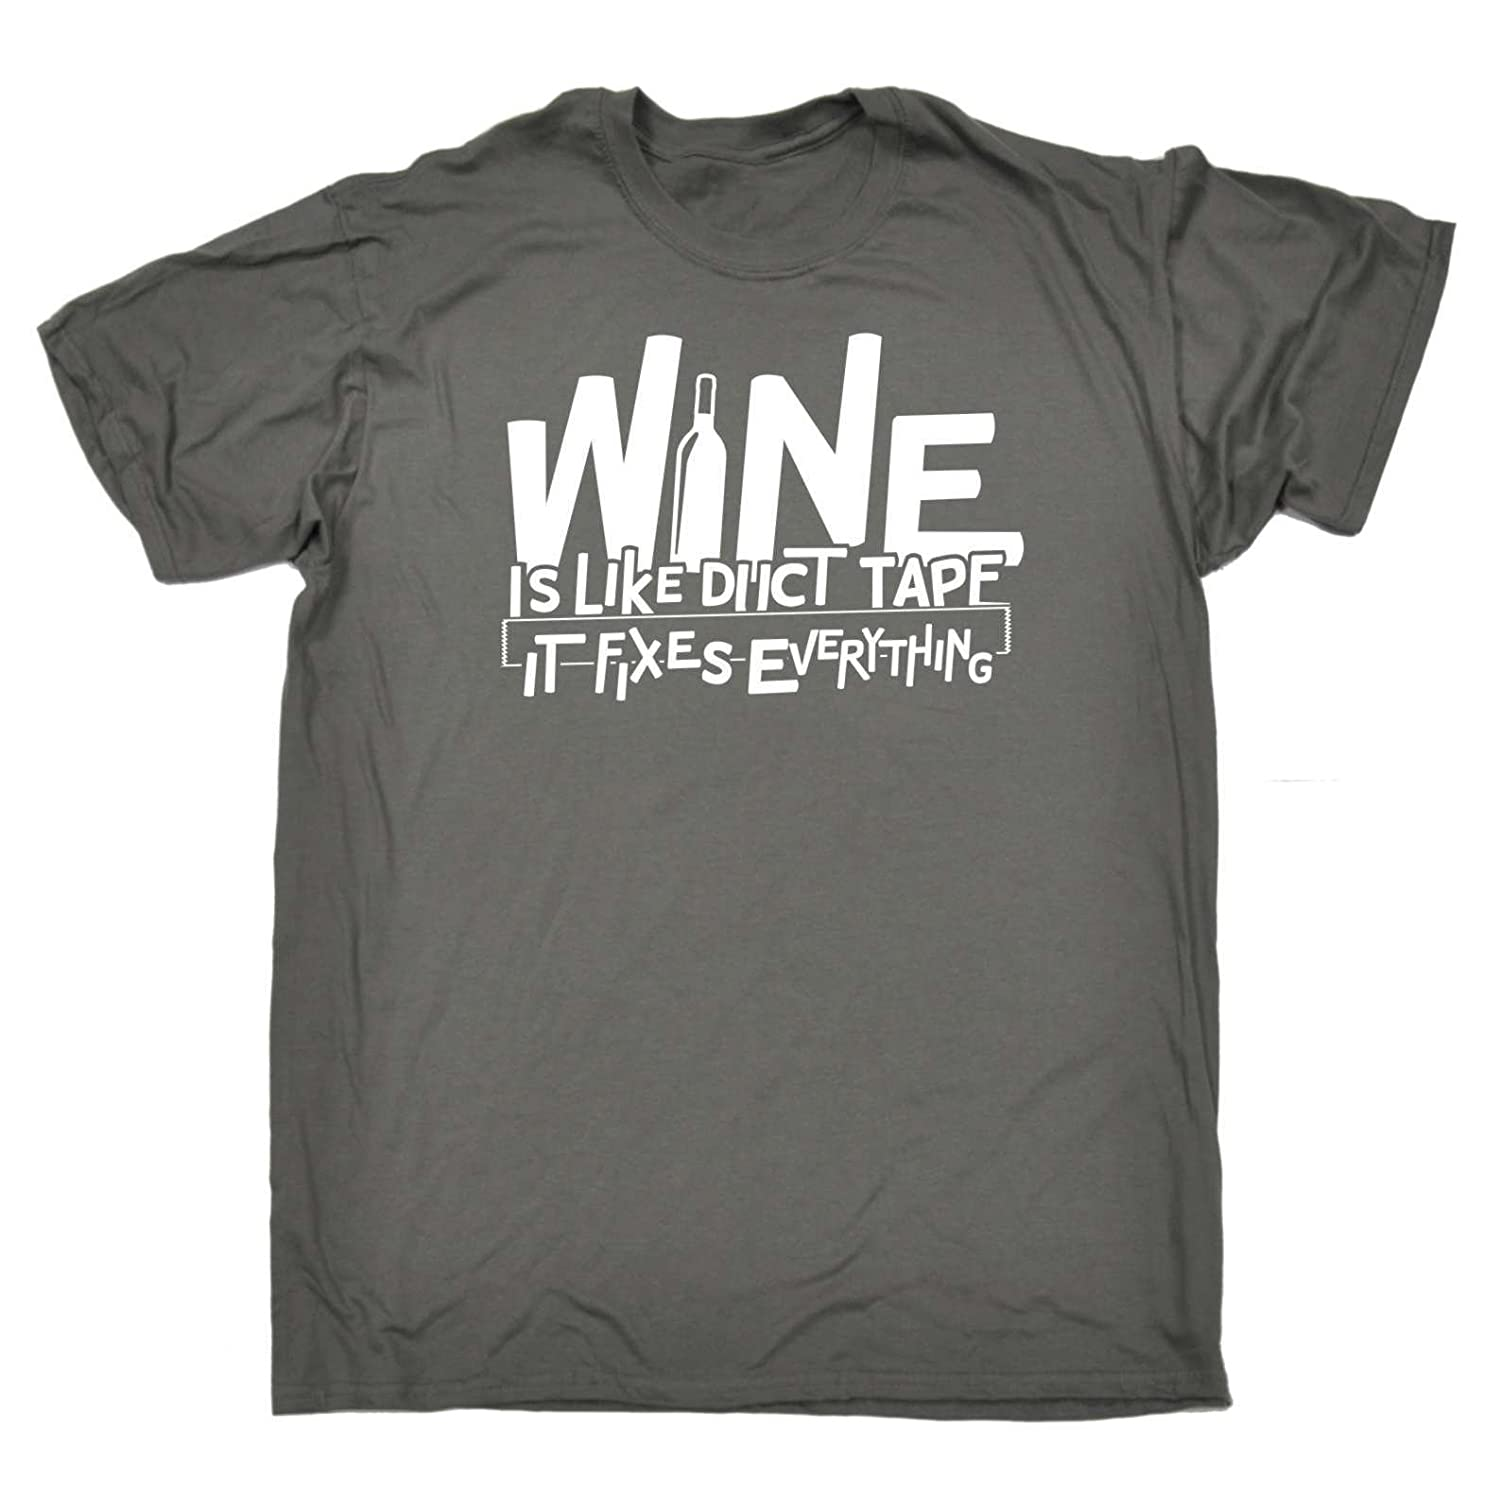 de7c952f 123t Funny T-Shirts - Men's Wine is Like Duct Tape It Fixes Everything  Gaffer - Novelty Slogan Christmas Birthday Gift Present t-Shirt Clothing  for him Tee ...